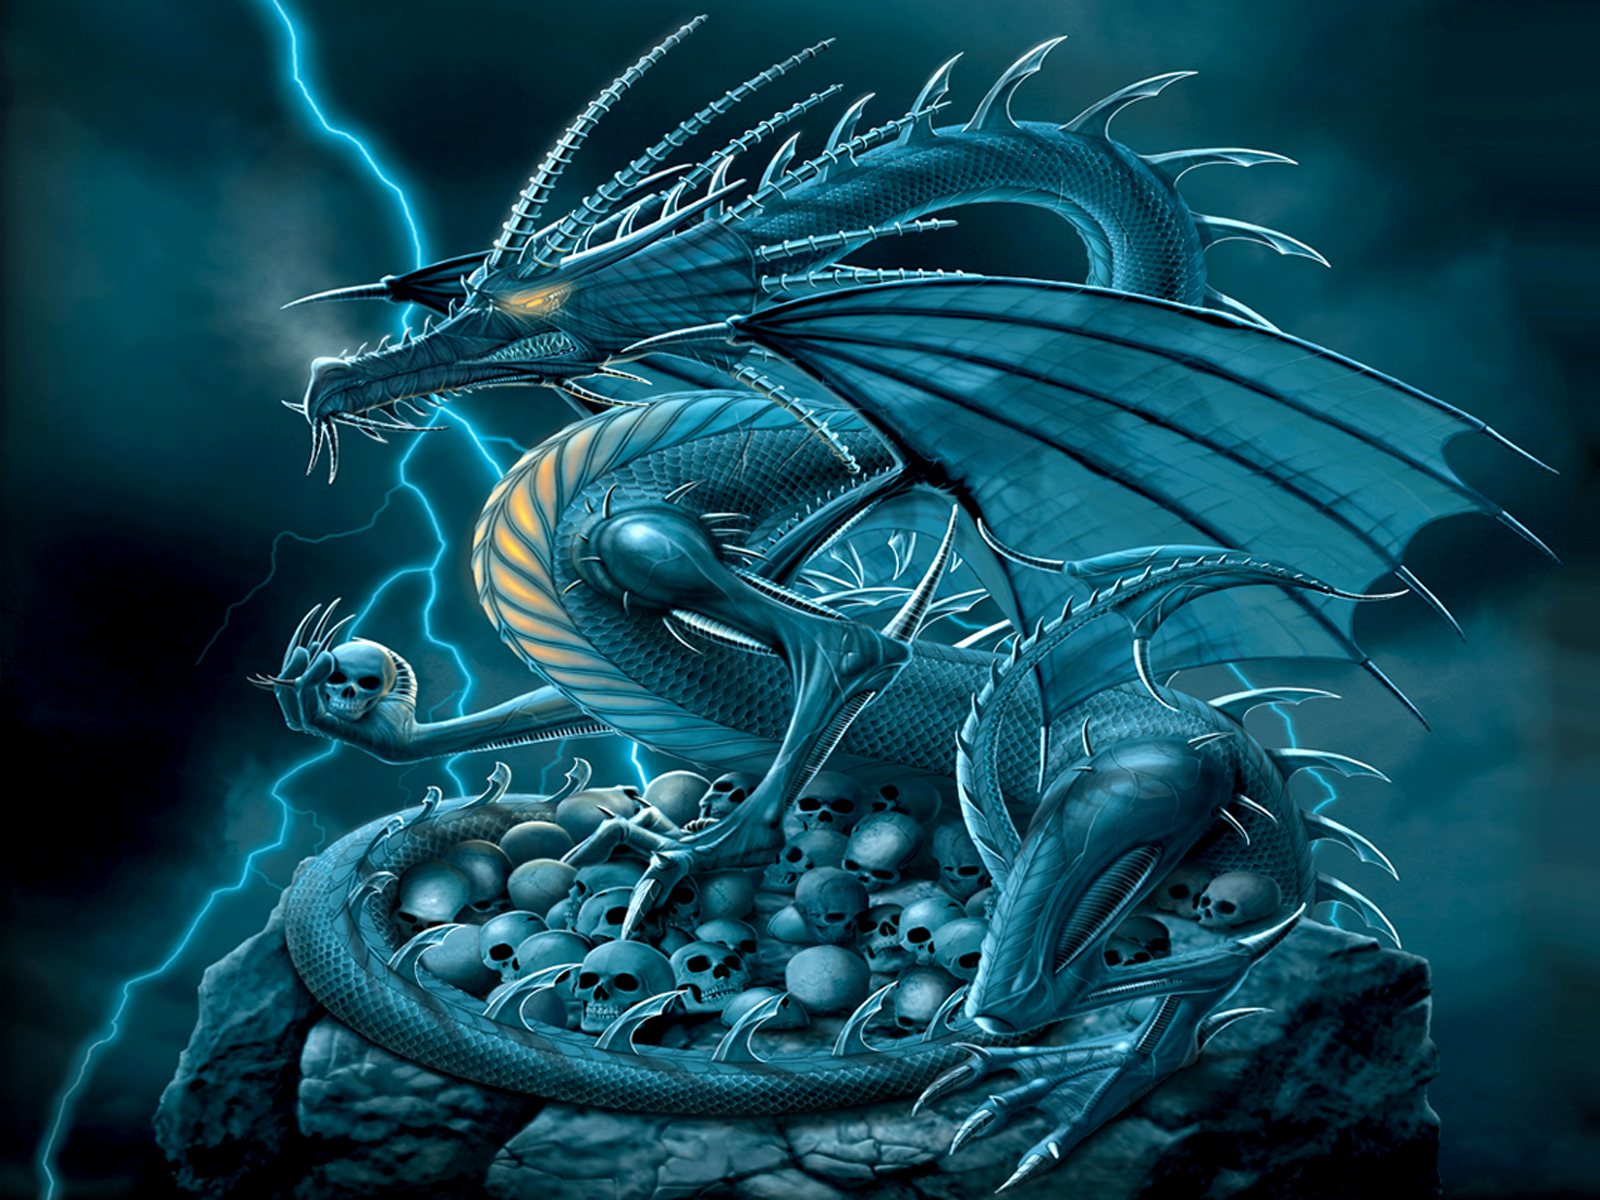 Chromium Dragon Wallpaper And Background Image